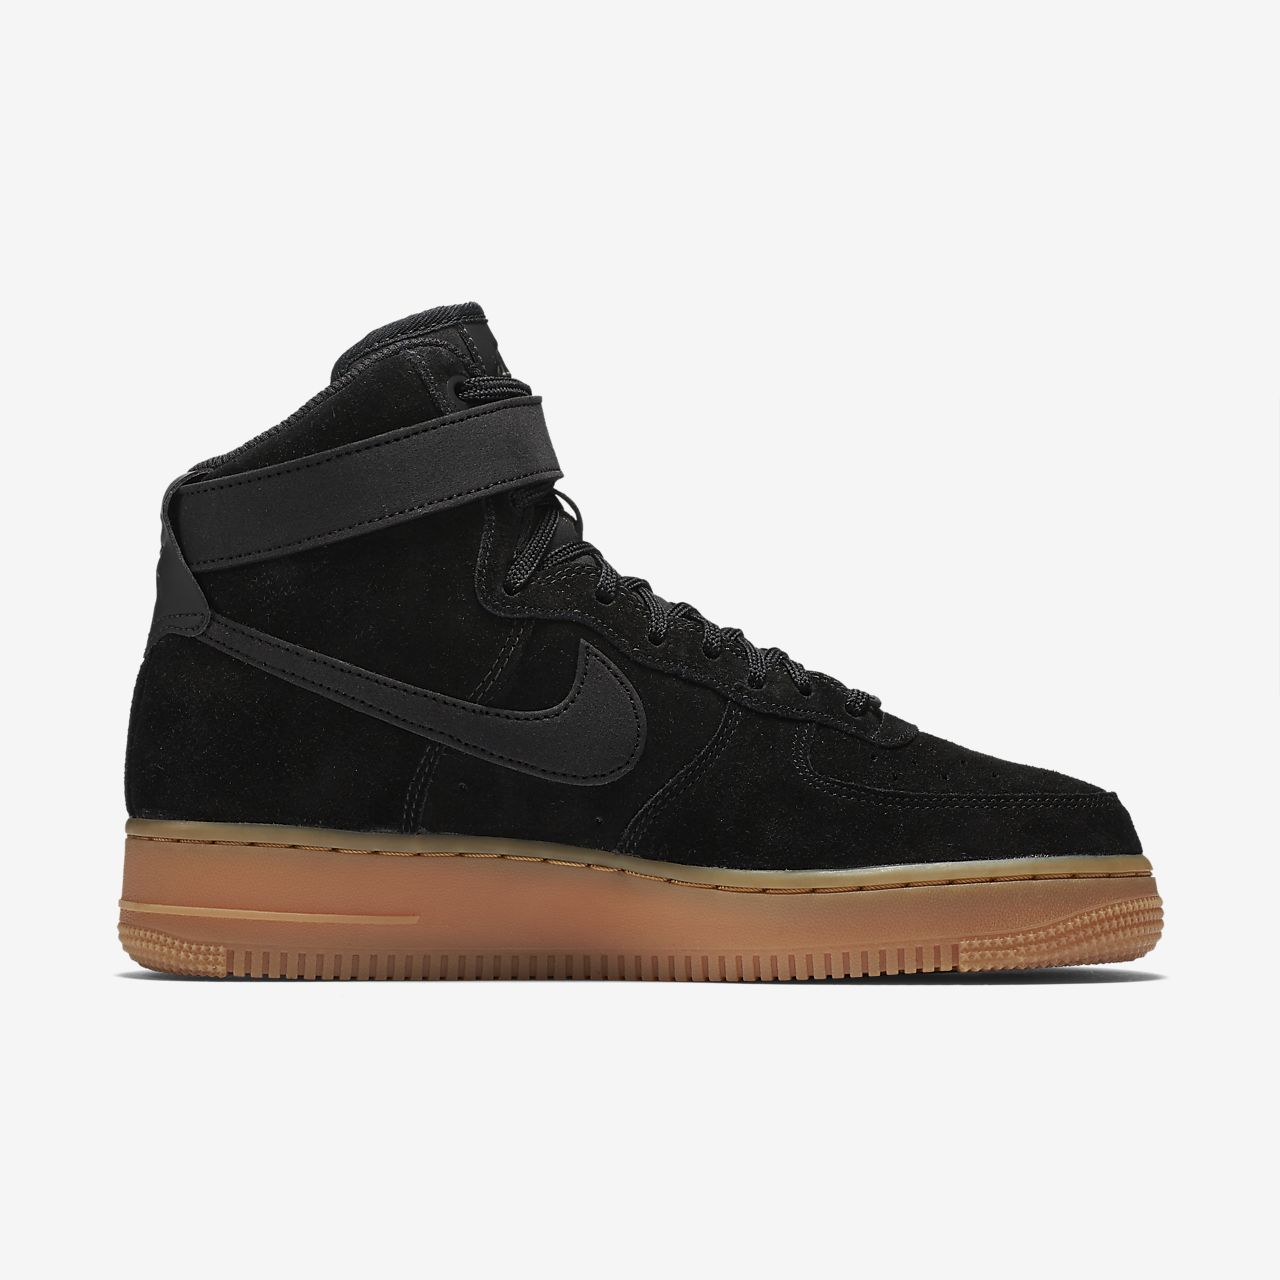 ... Chaussure Nike Air Force 1 High SE pour Femme